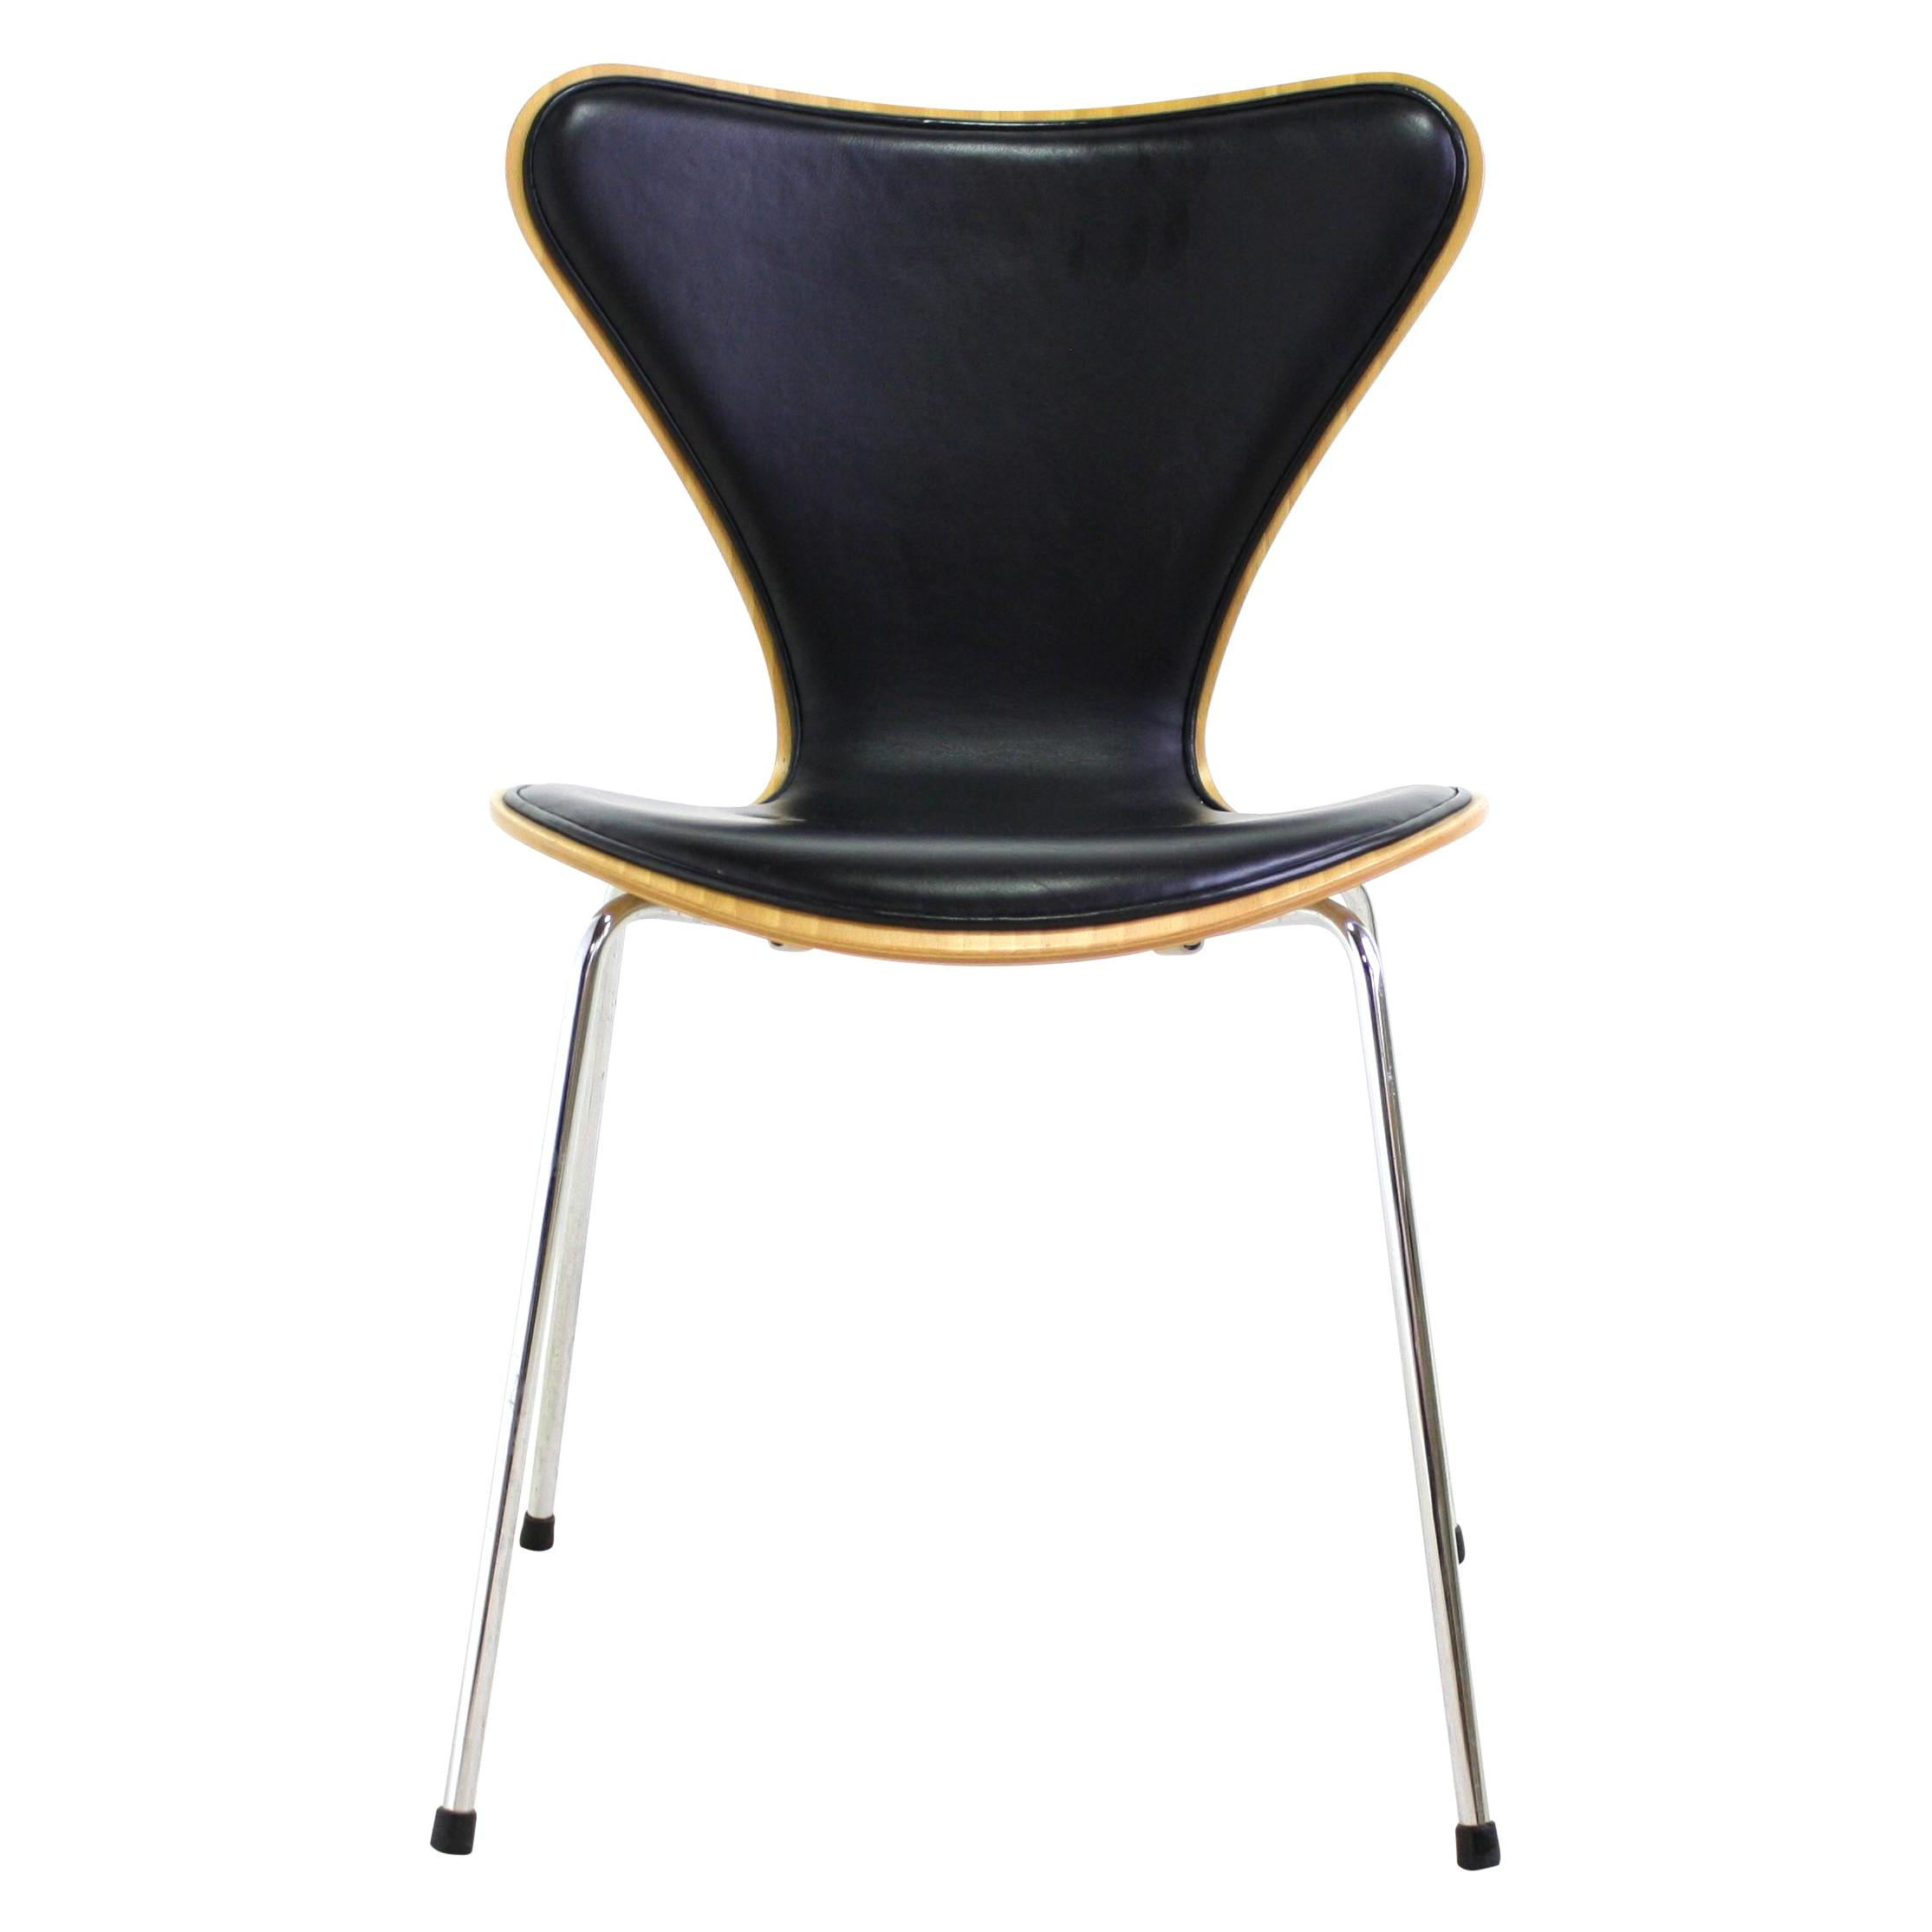 Arne Jacobsen Series Chair Black Avail Chairish